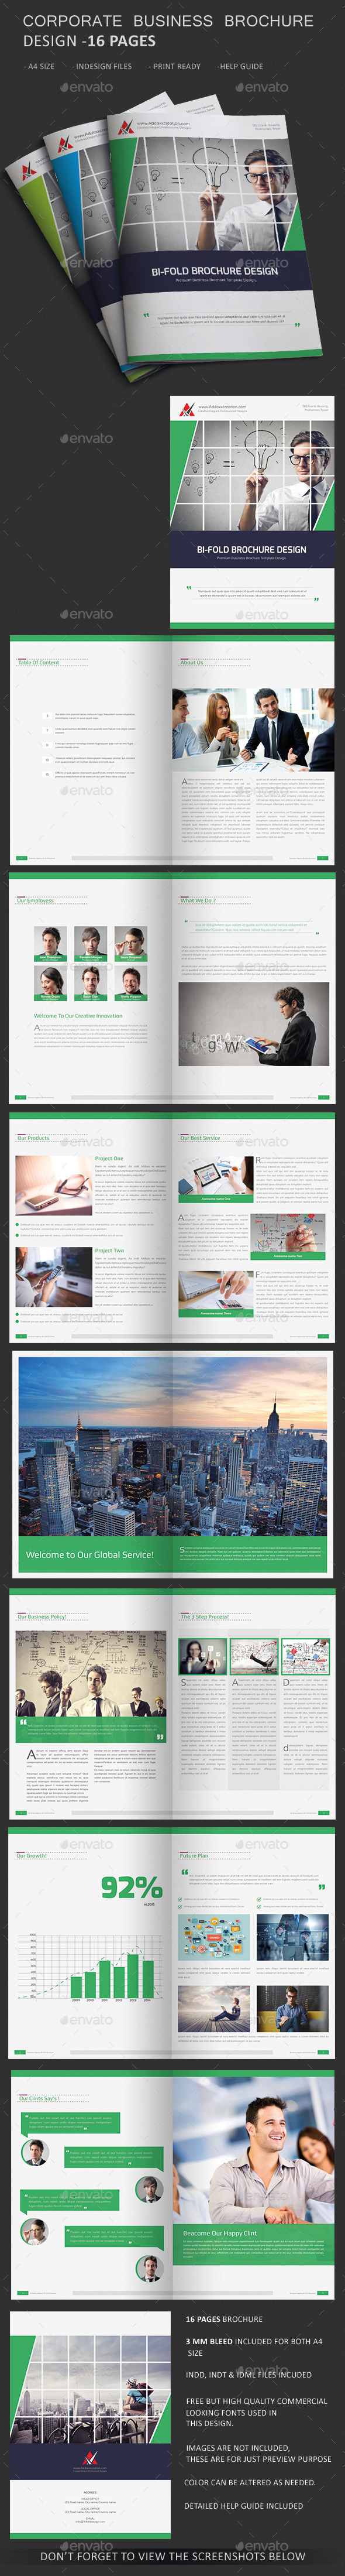 GraphicRiver Corporate Business Agency Bi-fold Brochure 16 P 11123029